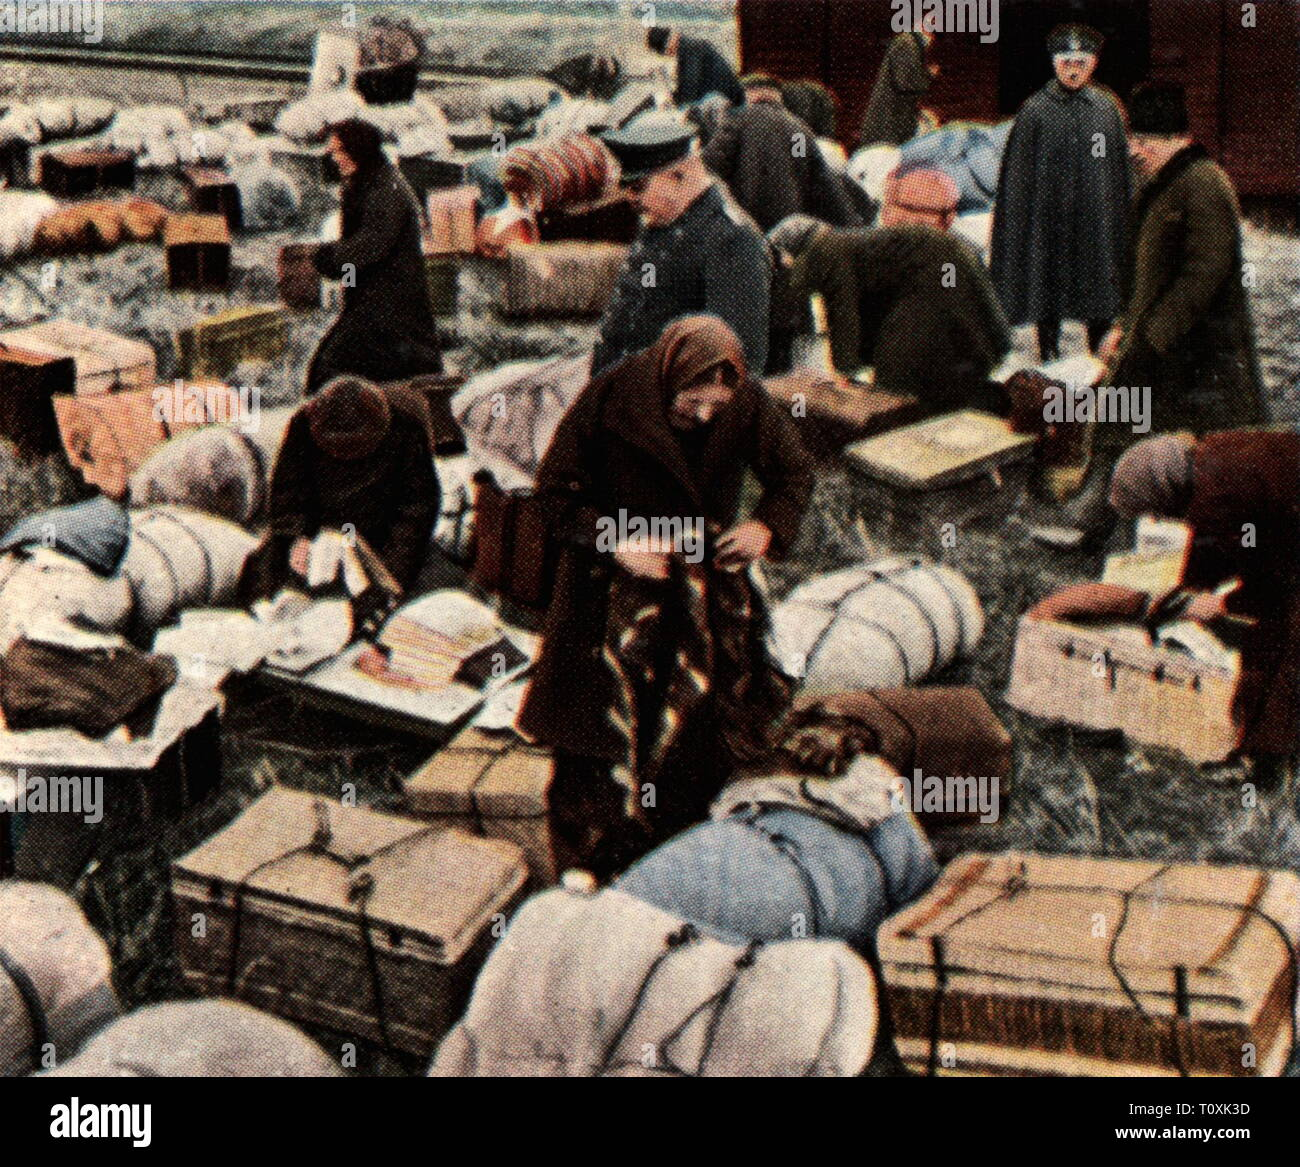 people, refugees, Volga Germans which fled the Soviet Union, Eydtkuhnen, East Prussia, December 1929, coloured photograph, cigarette card, series 'Die Nachkriegszeit', 1935, Chernyshevskoye, Russia, flight, displacement, Germans, German, USSR, Union of Socialist Soviet Republics, persecution, persecutions, Stalinism, Prussia, Germany, German Reich, Weimar Republic, people, 1920s, 20th century, refugee, refugees, coloured, colored, post war period, post-war period, post-war years, post-war era, historic, historical, Additional-Rights-Clearance-Info-Not-Available - Stock Image